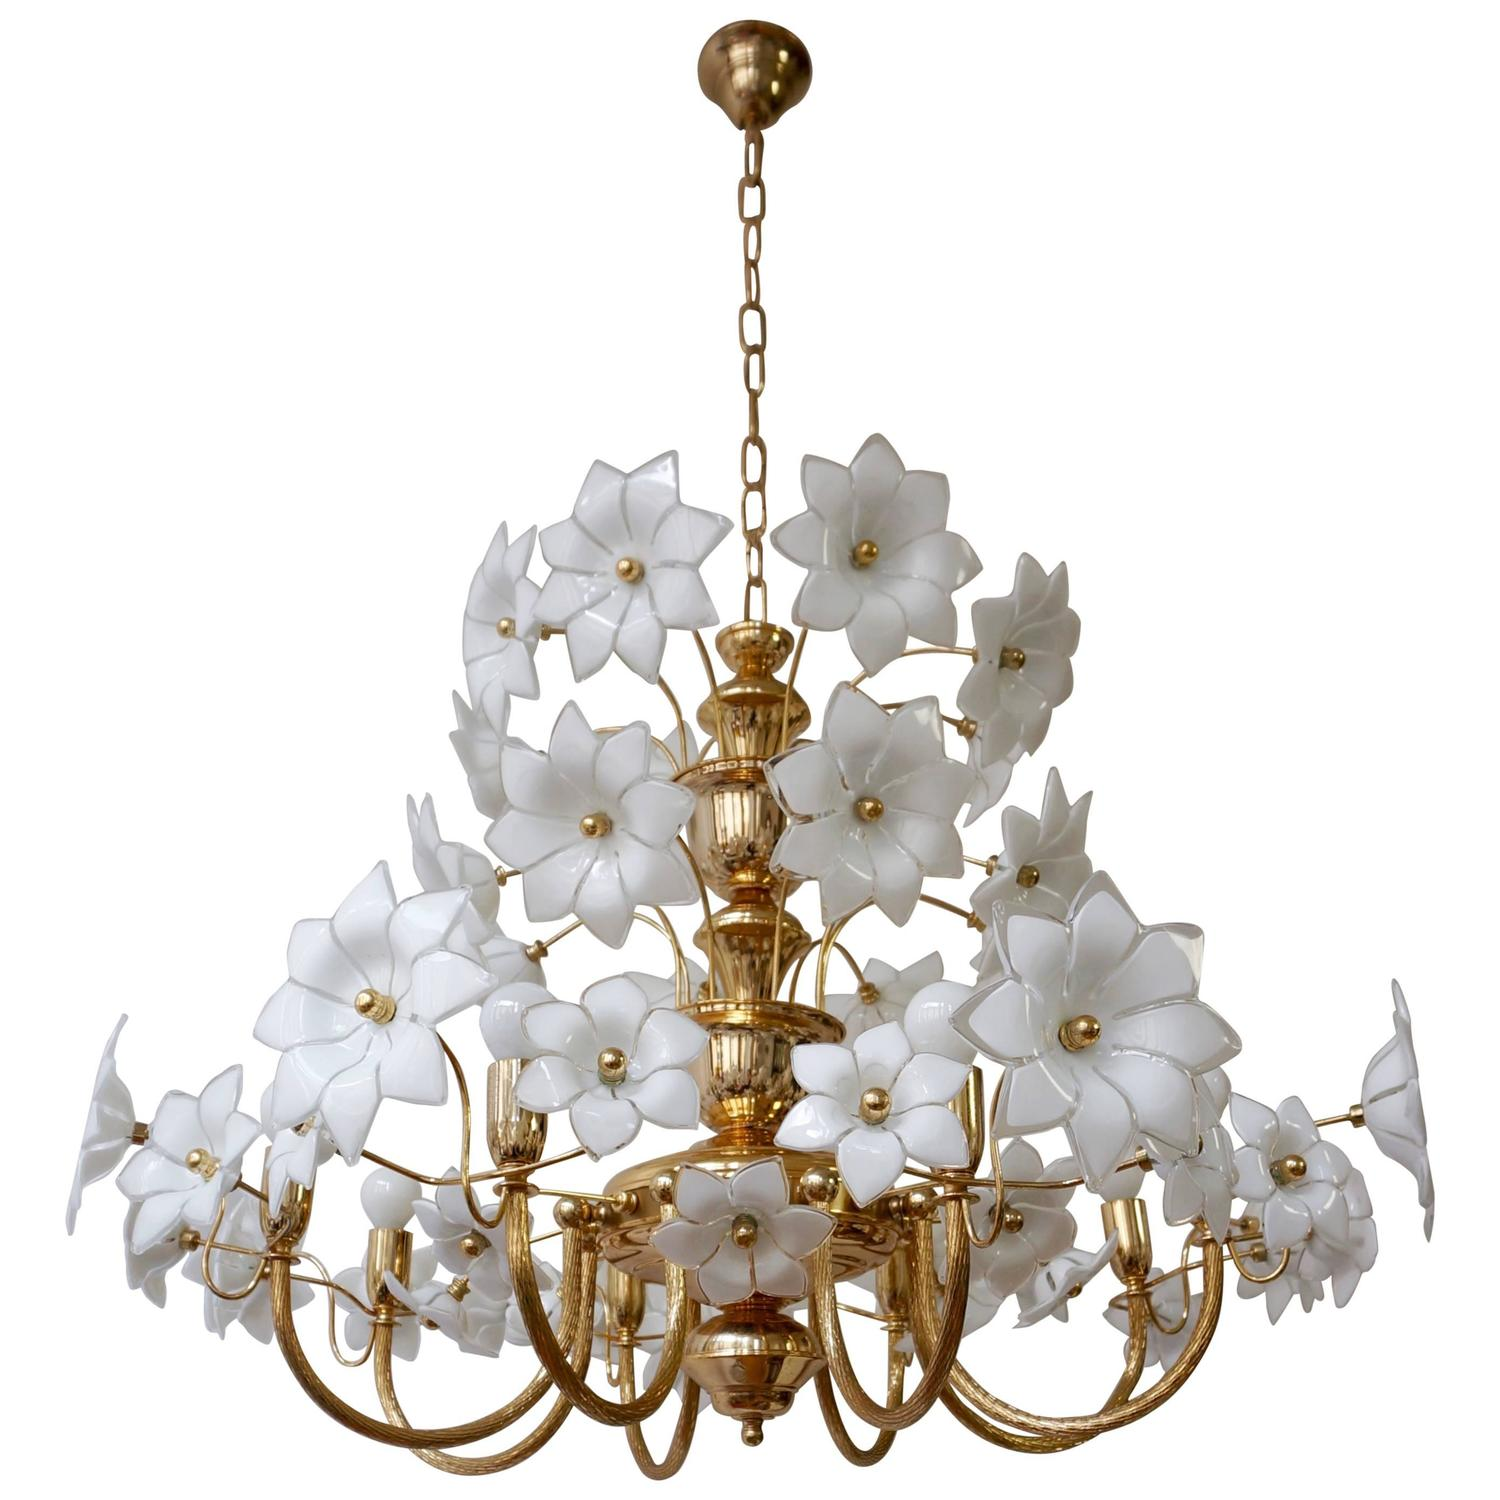 Murano Chrome and Glass Flower Ball Chandelier For Sale at 1stdibs